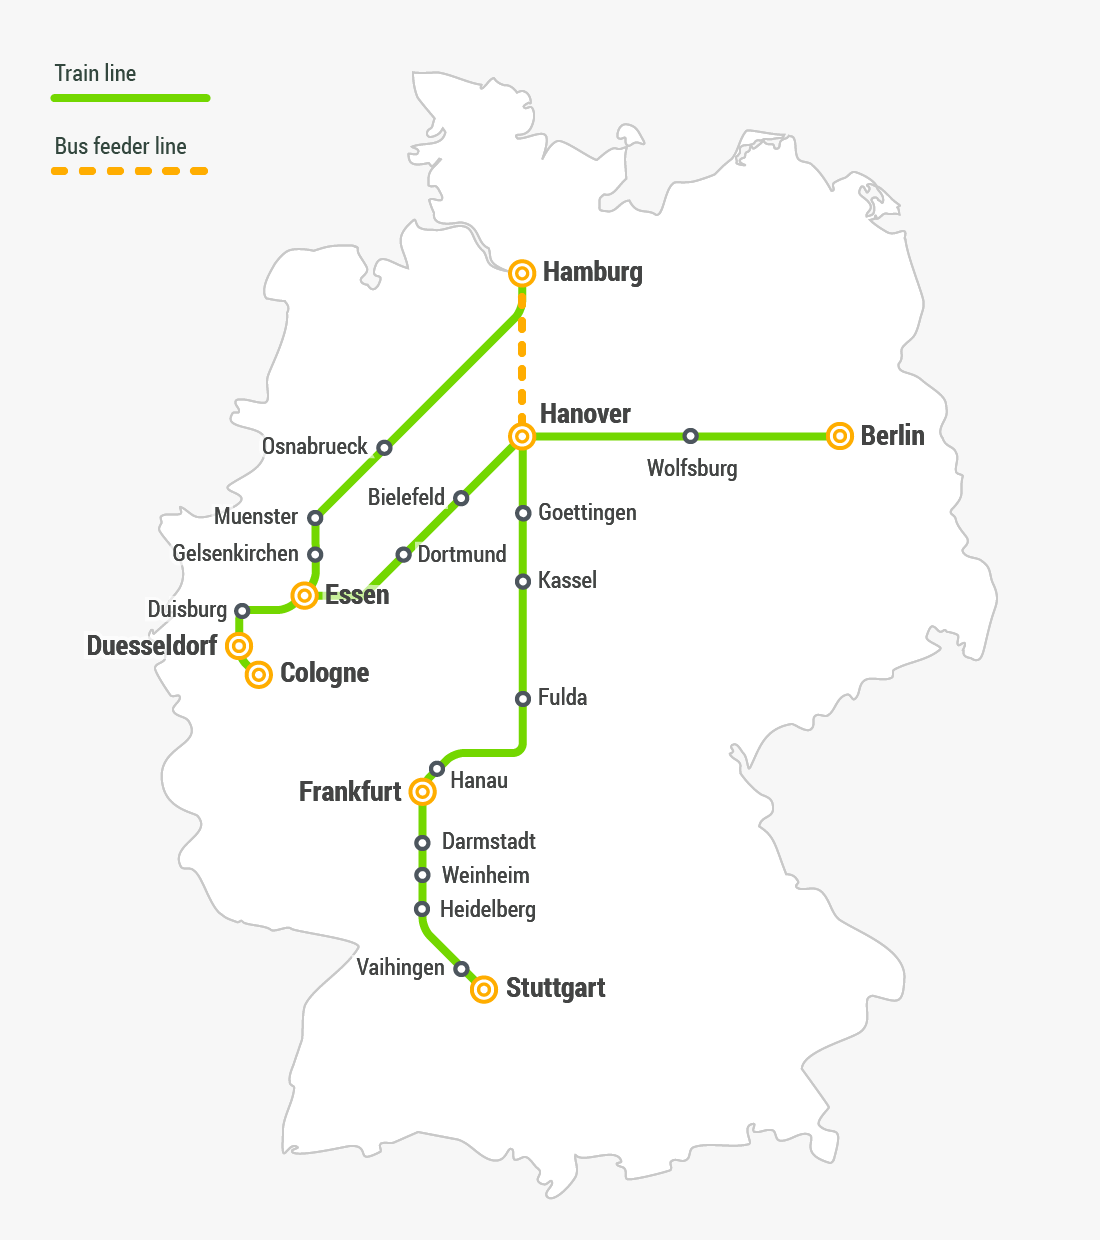 Fast Train Travel in Germany | FlixTrain on cologne to budapest map, austin bus map, stuttgart u-bahn map, cologne train map, stuttgart u lines map, frankfurt s-bahn map, stuttgart s-bahn map, s-bahn duesseldorf map,